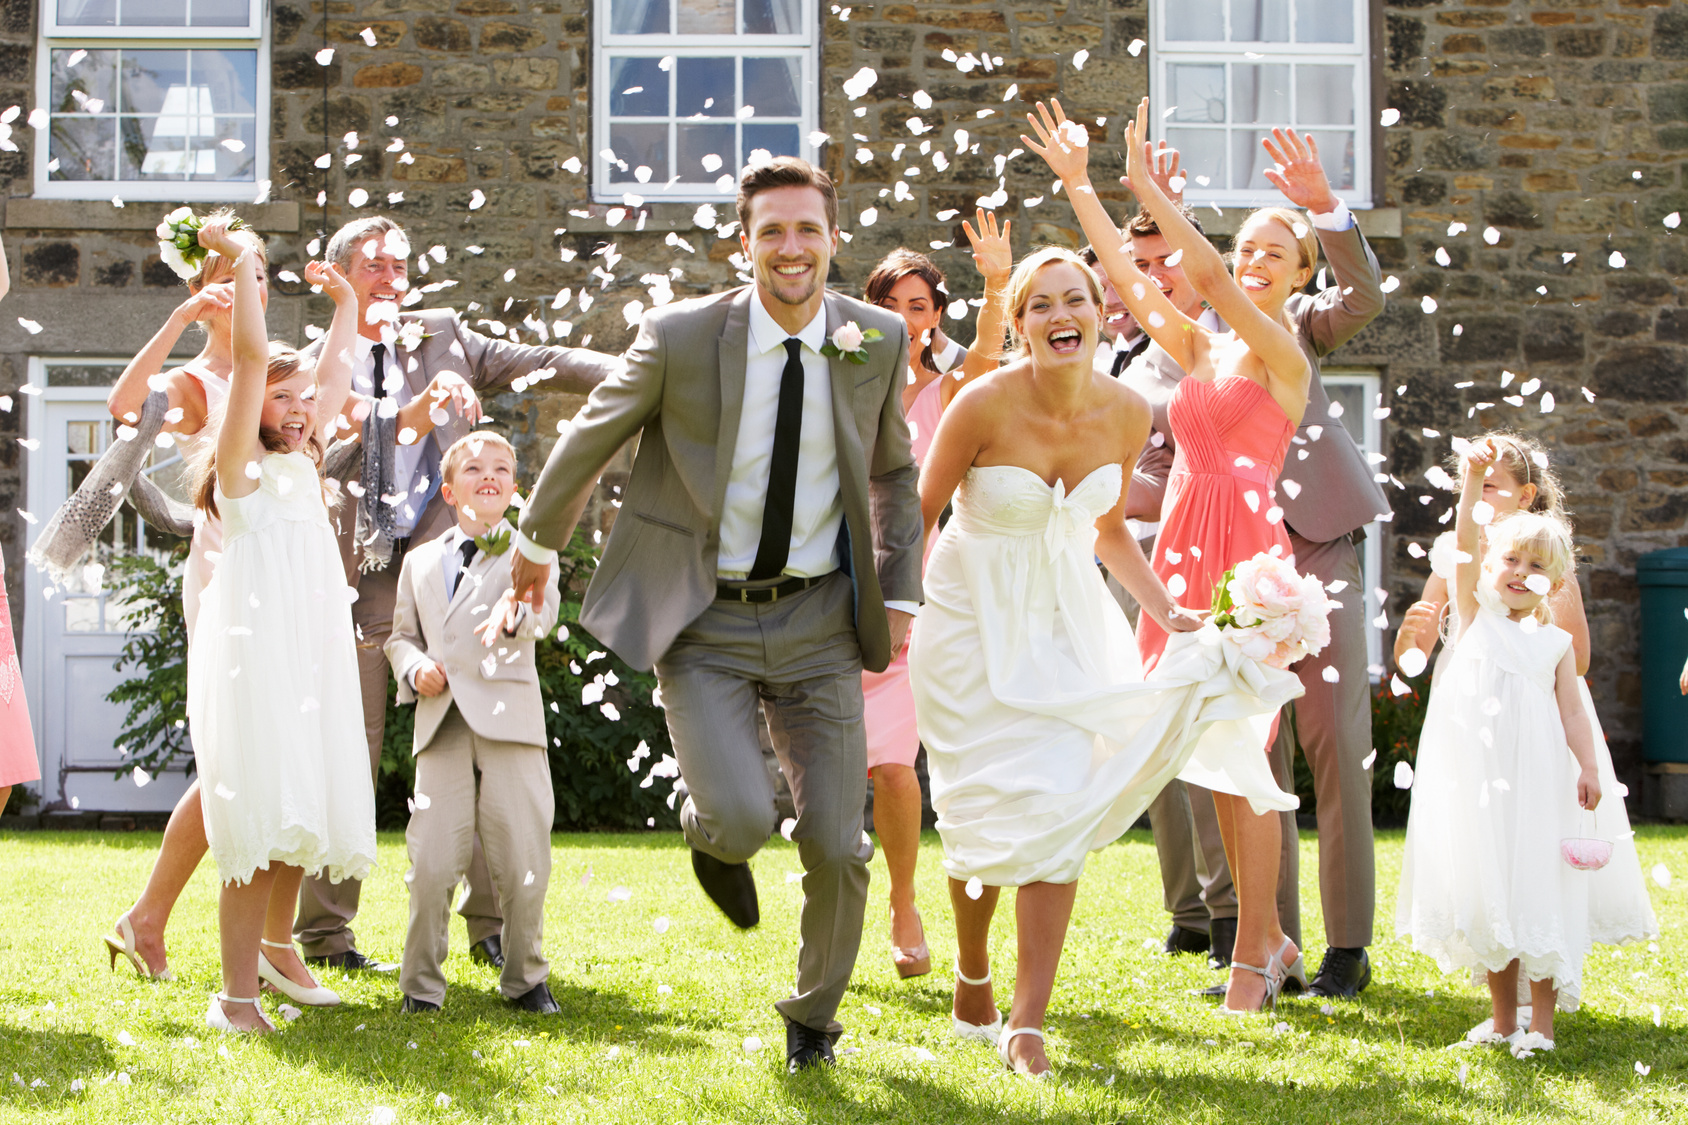 Celebrate your wedding with a commemorative plaque!